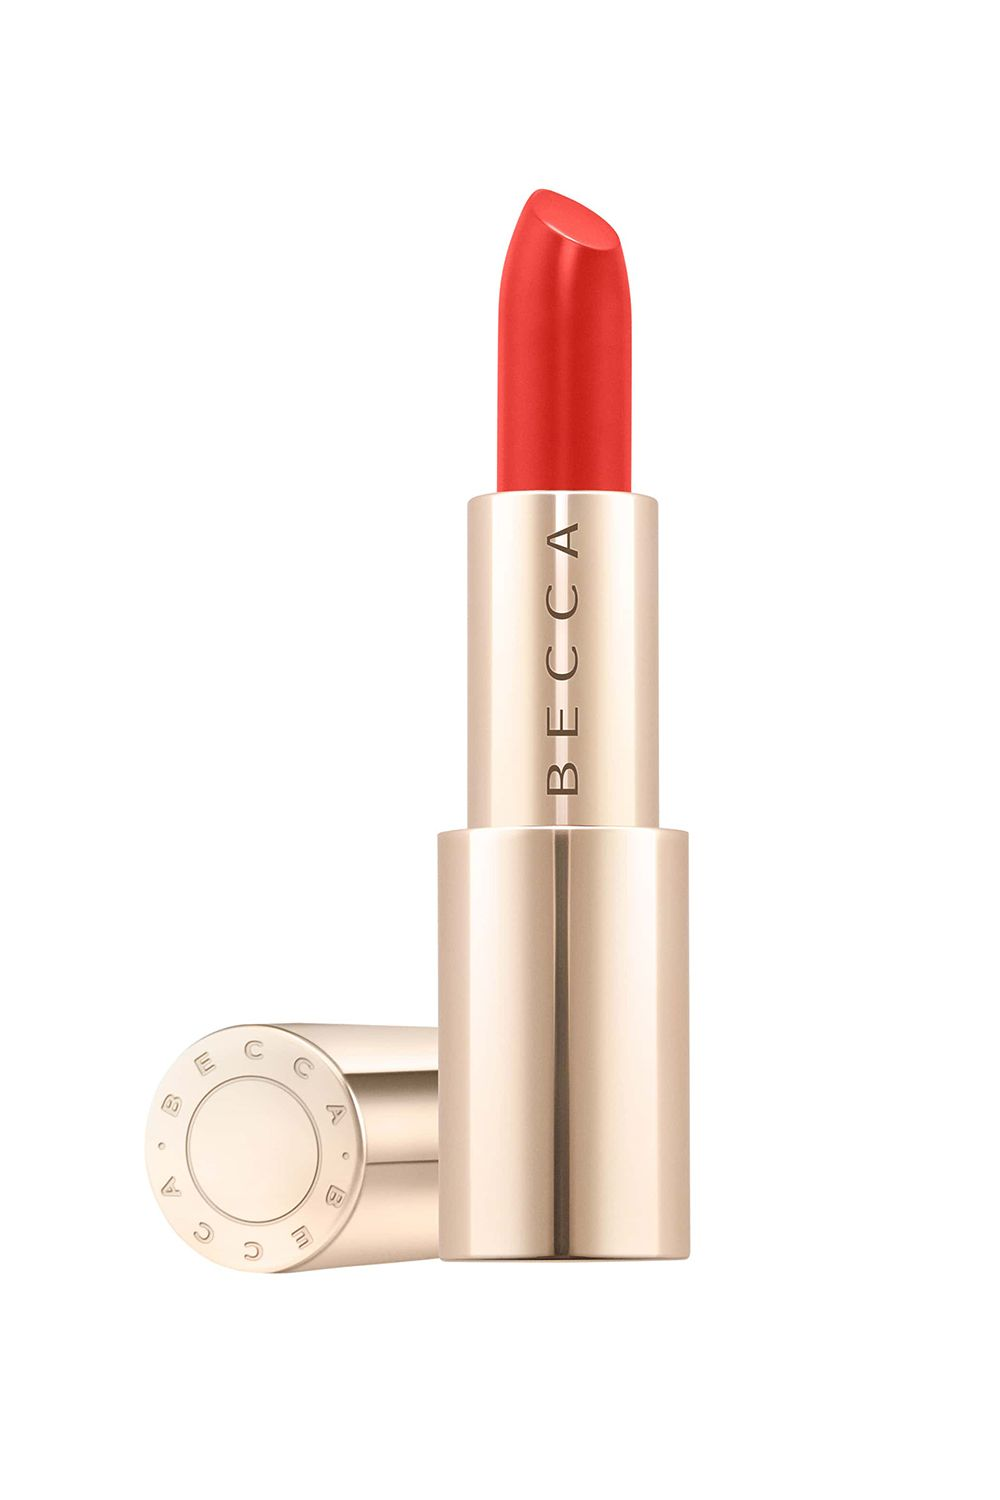 Flashy Coral Becca Ultimate Lipstick Love in Poppy, $24 SHOP IT The onset of spring means you can't shy away from striking shades like this bright coral. What's even better is that your lips will never get dry or chapped because this formula features hyaluronic acid, which will keep your skin moisturized to the max.